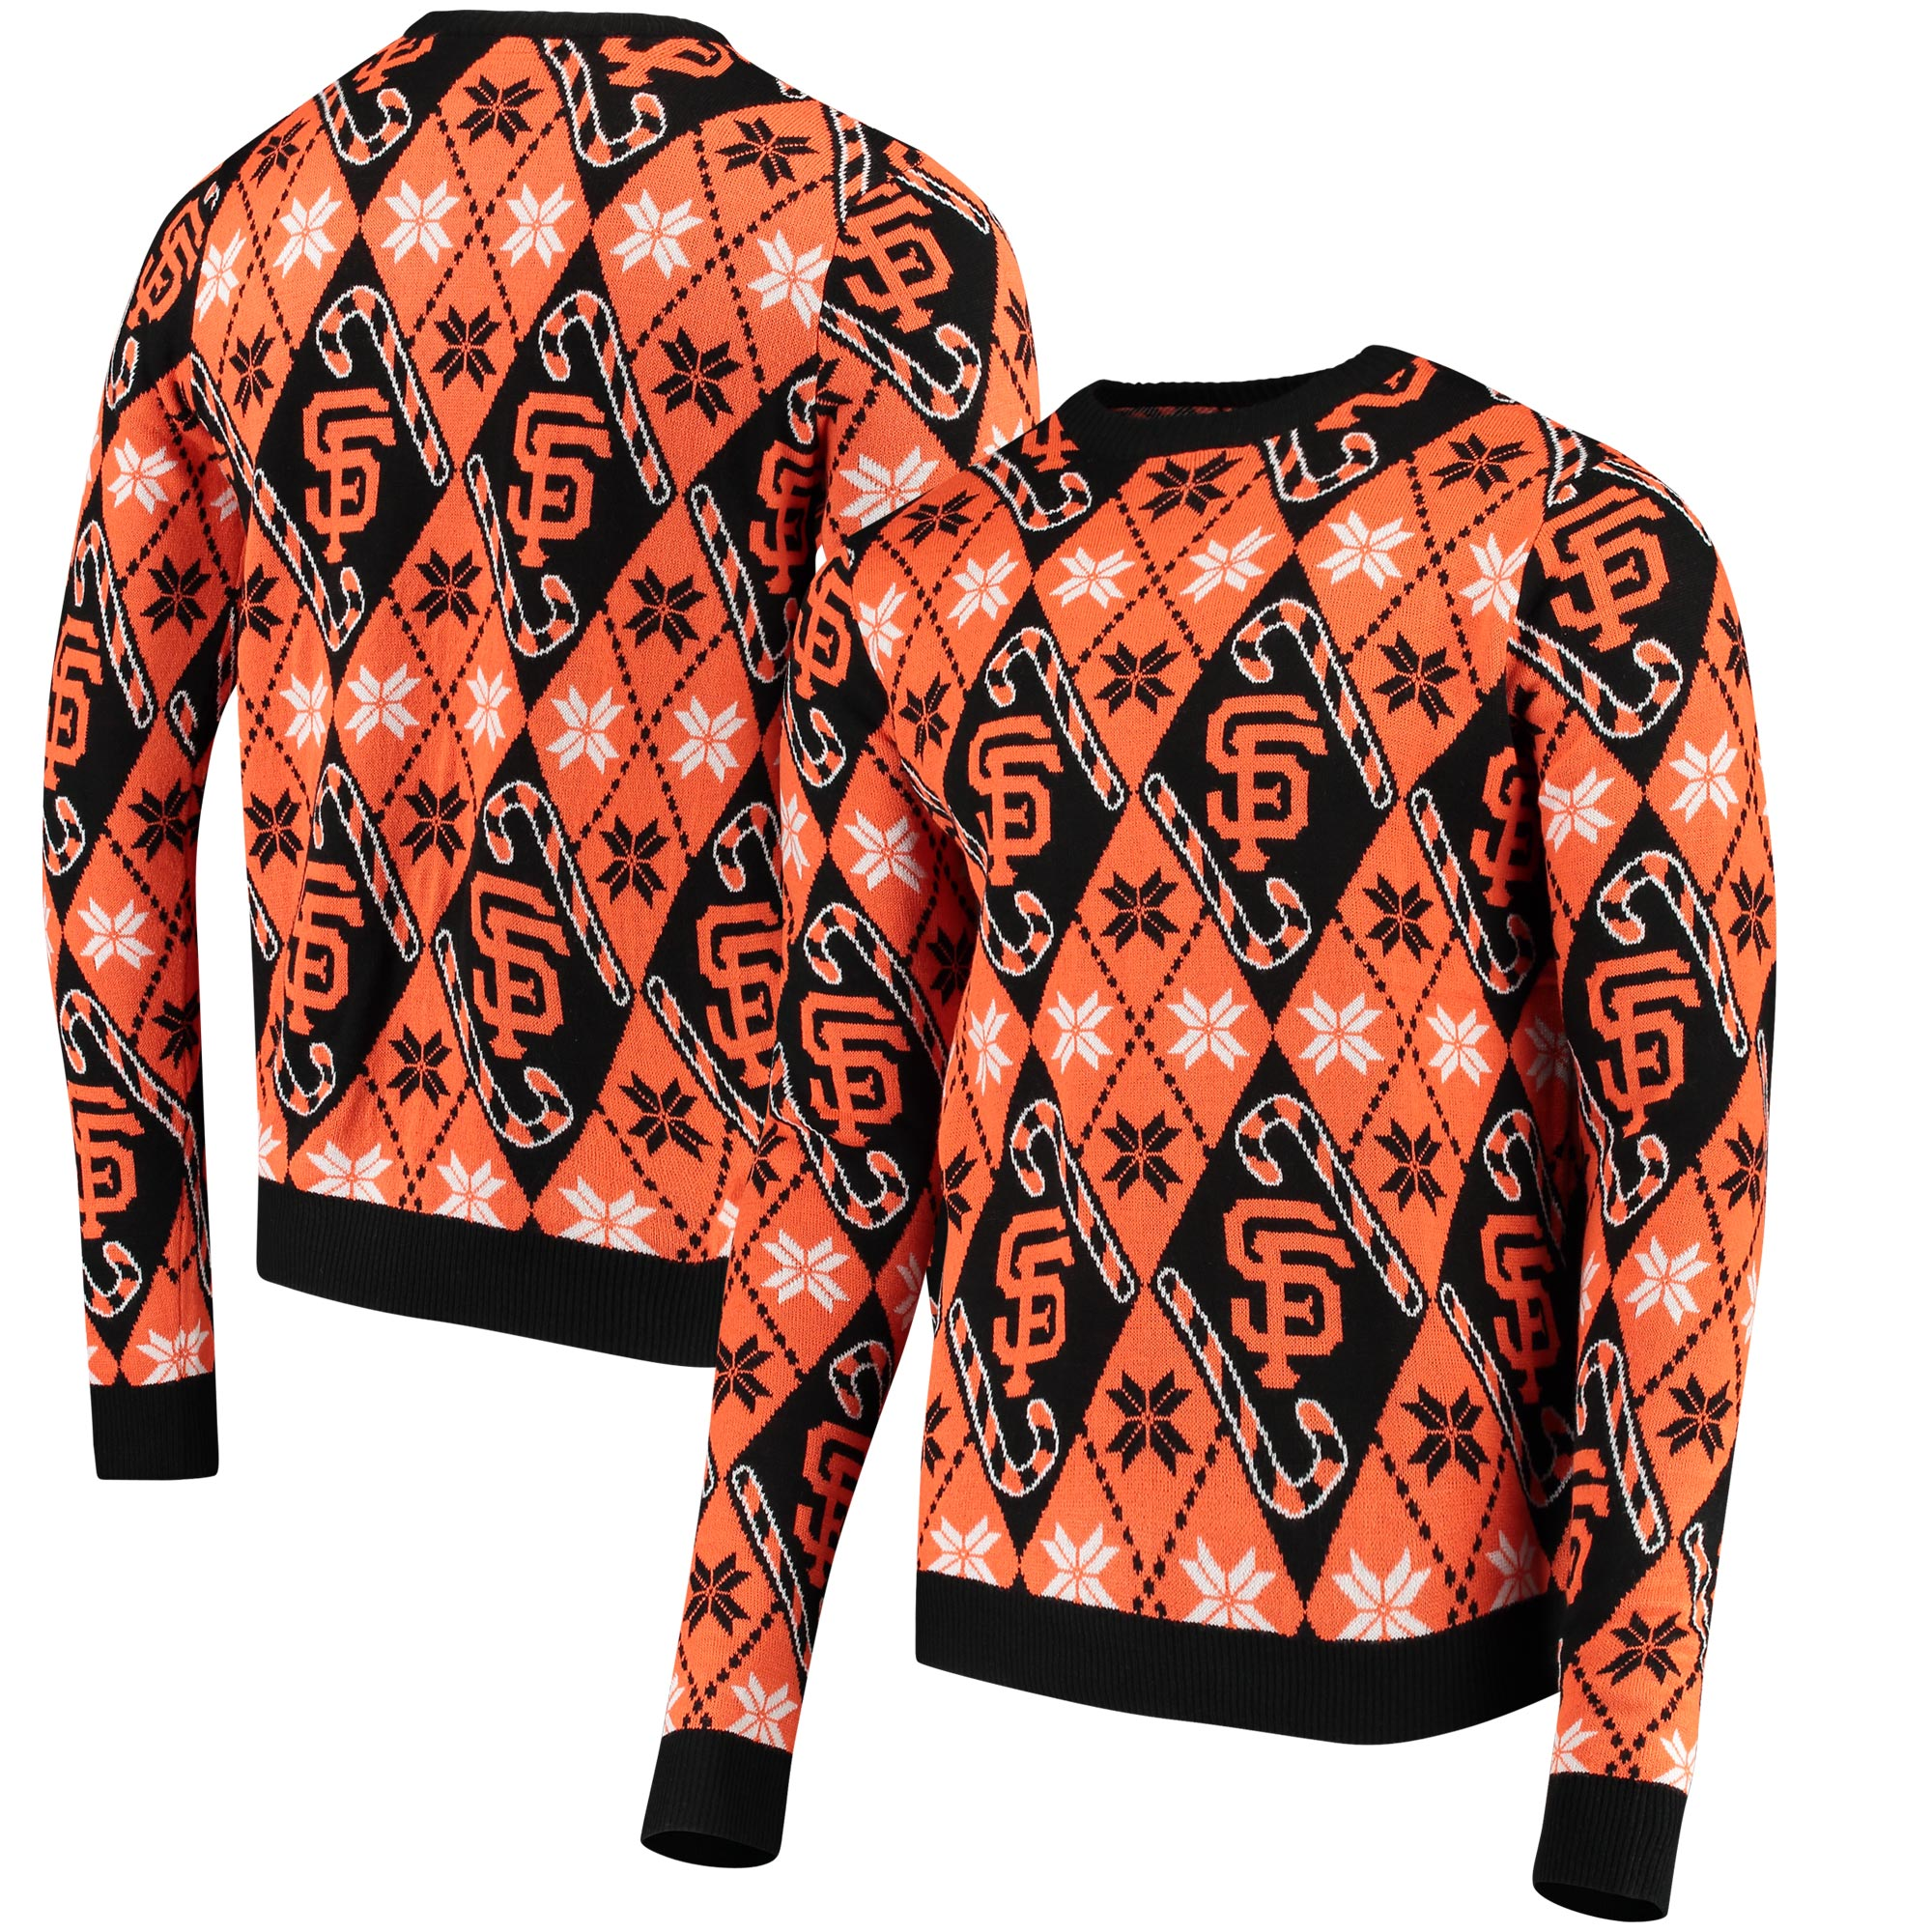 San Francisco Giants Candy Cane Repeat Sweater - Orange